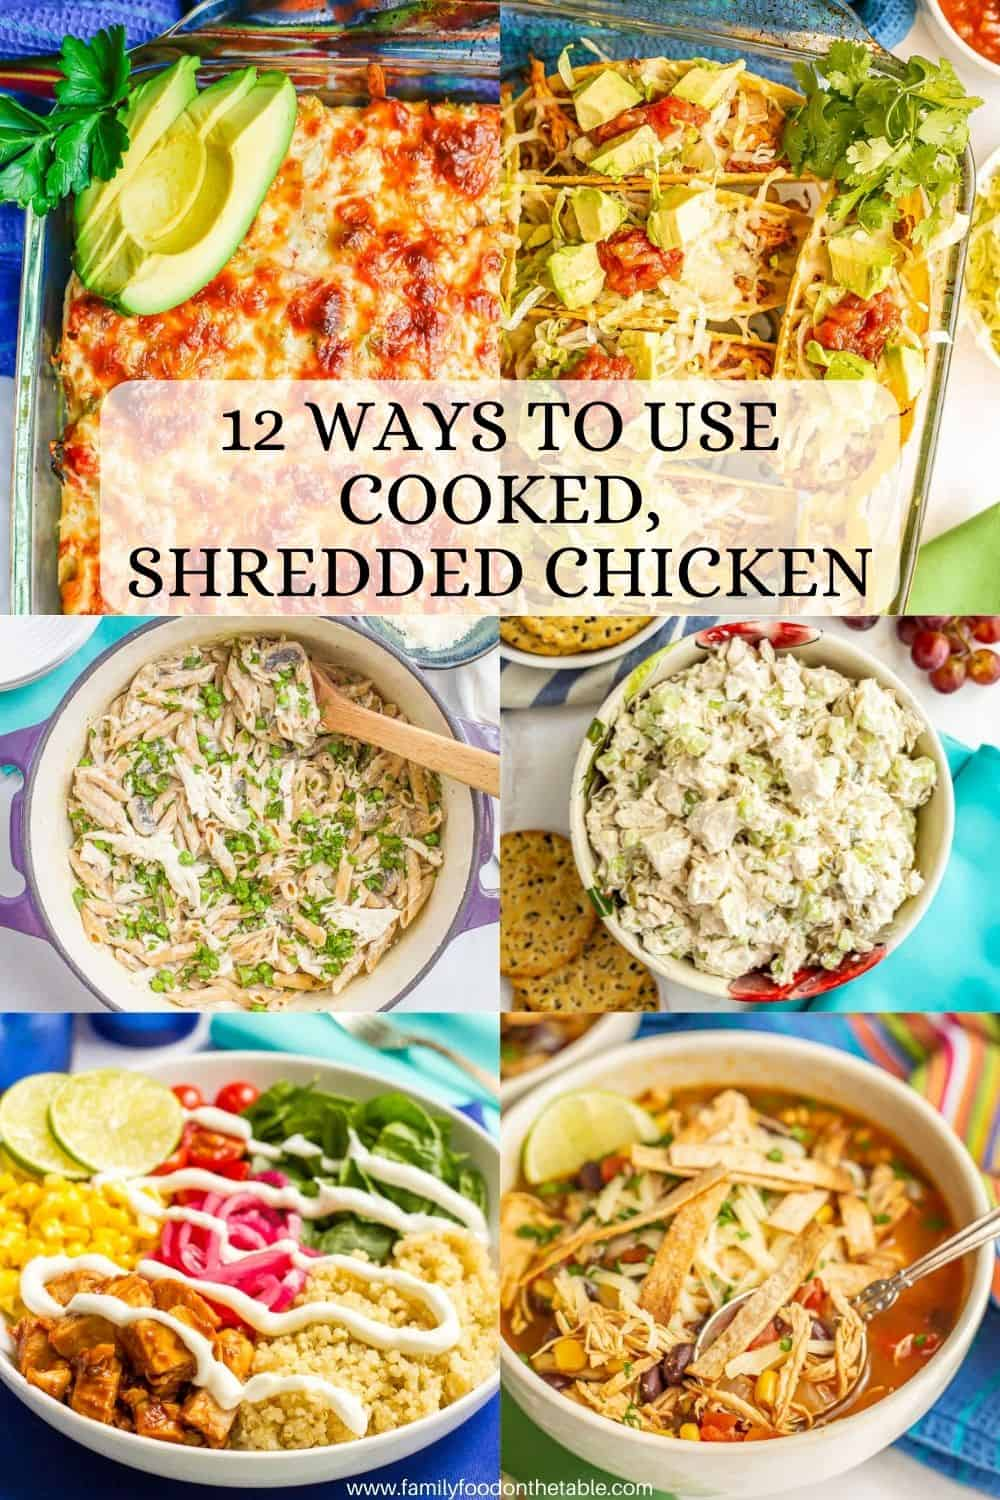 A collage of six photos of recipes made using leftover cooked, shredded chicken with a text overlay on the photos